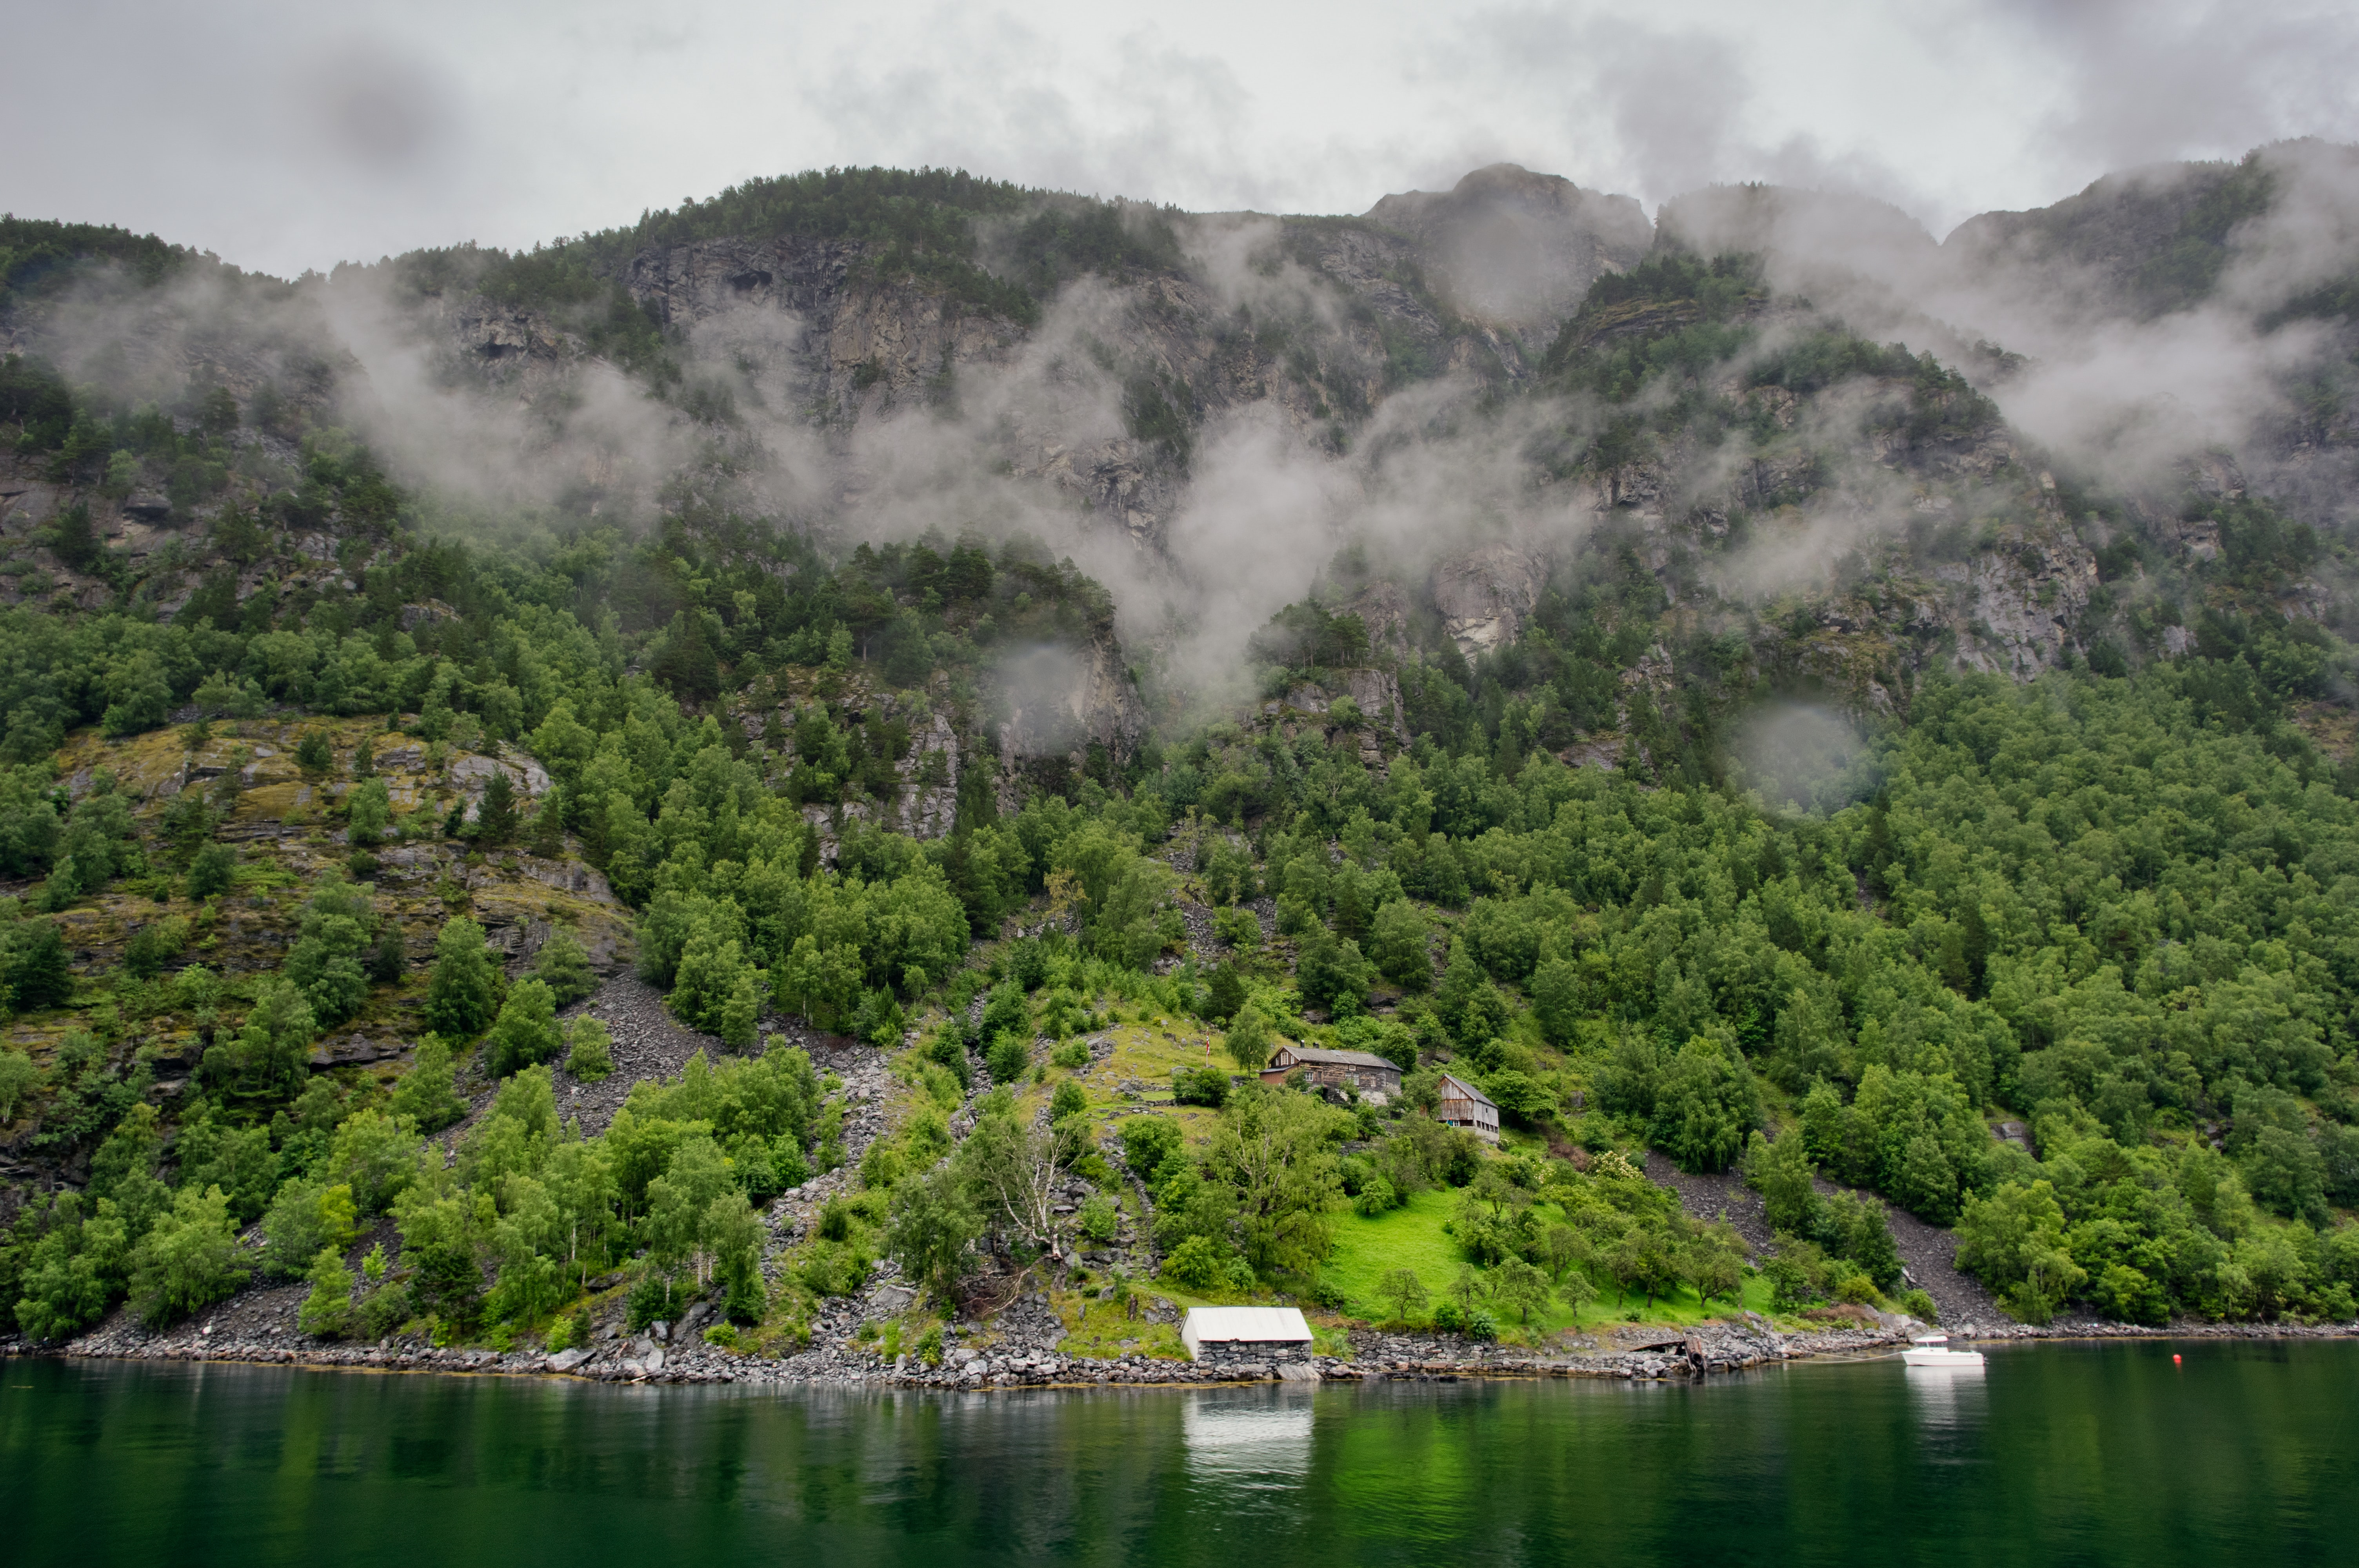 Small white house at the base of a hill with clouds at the top situated on the edge of a lake